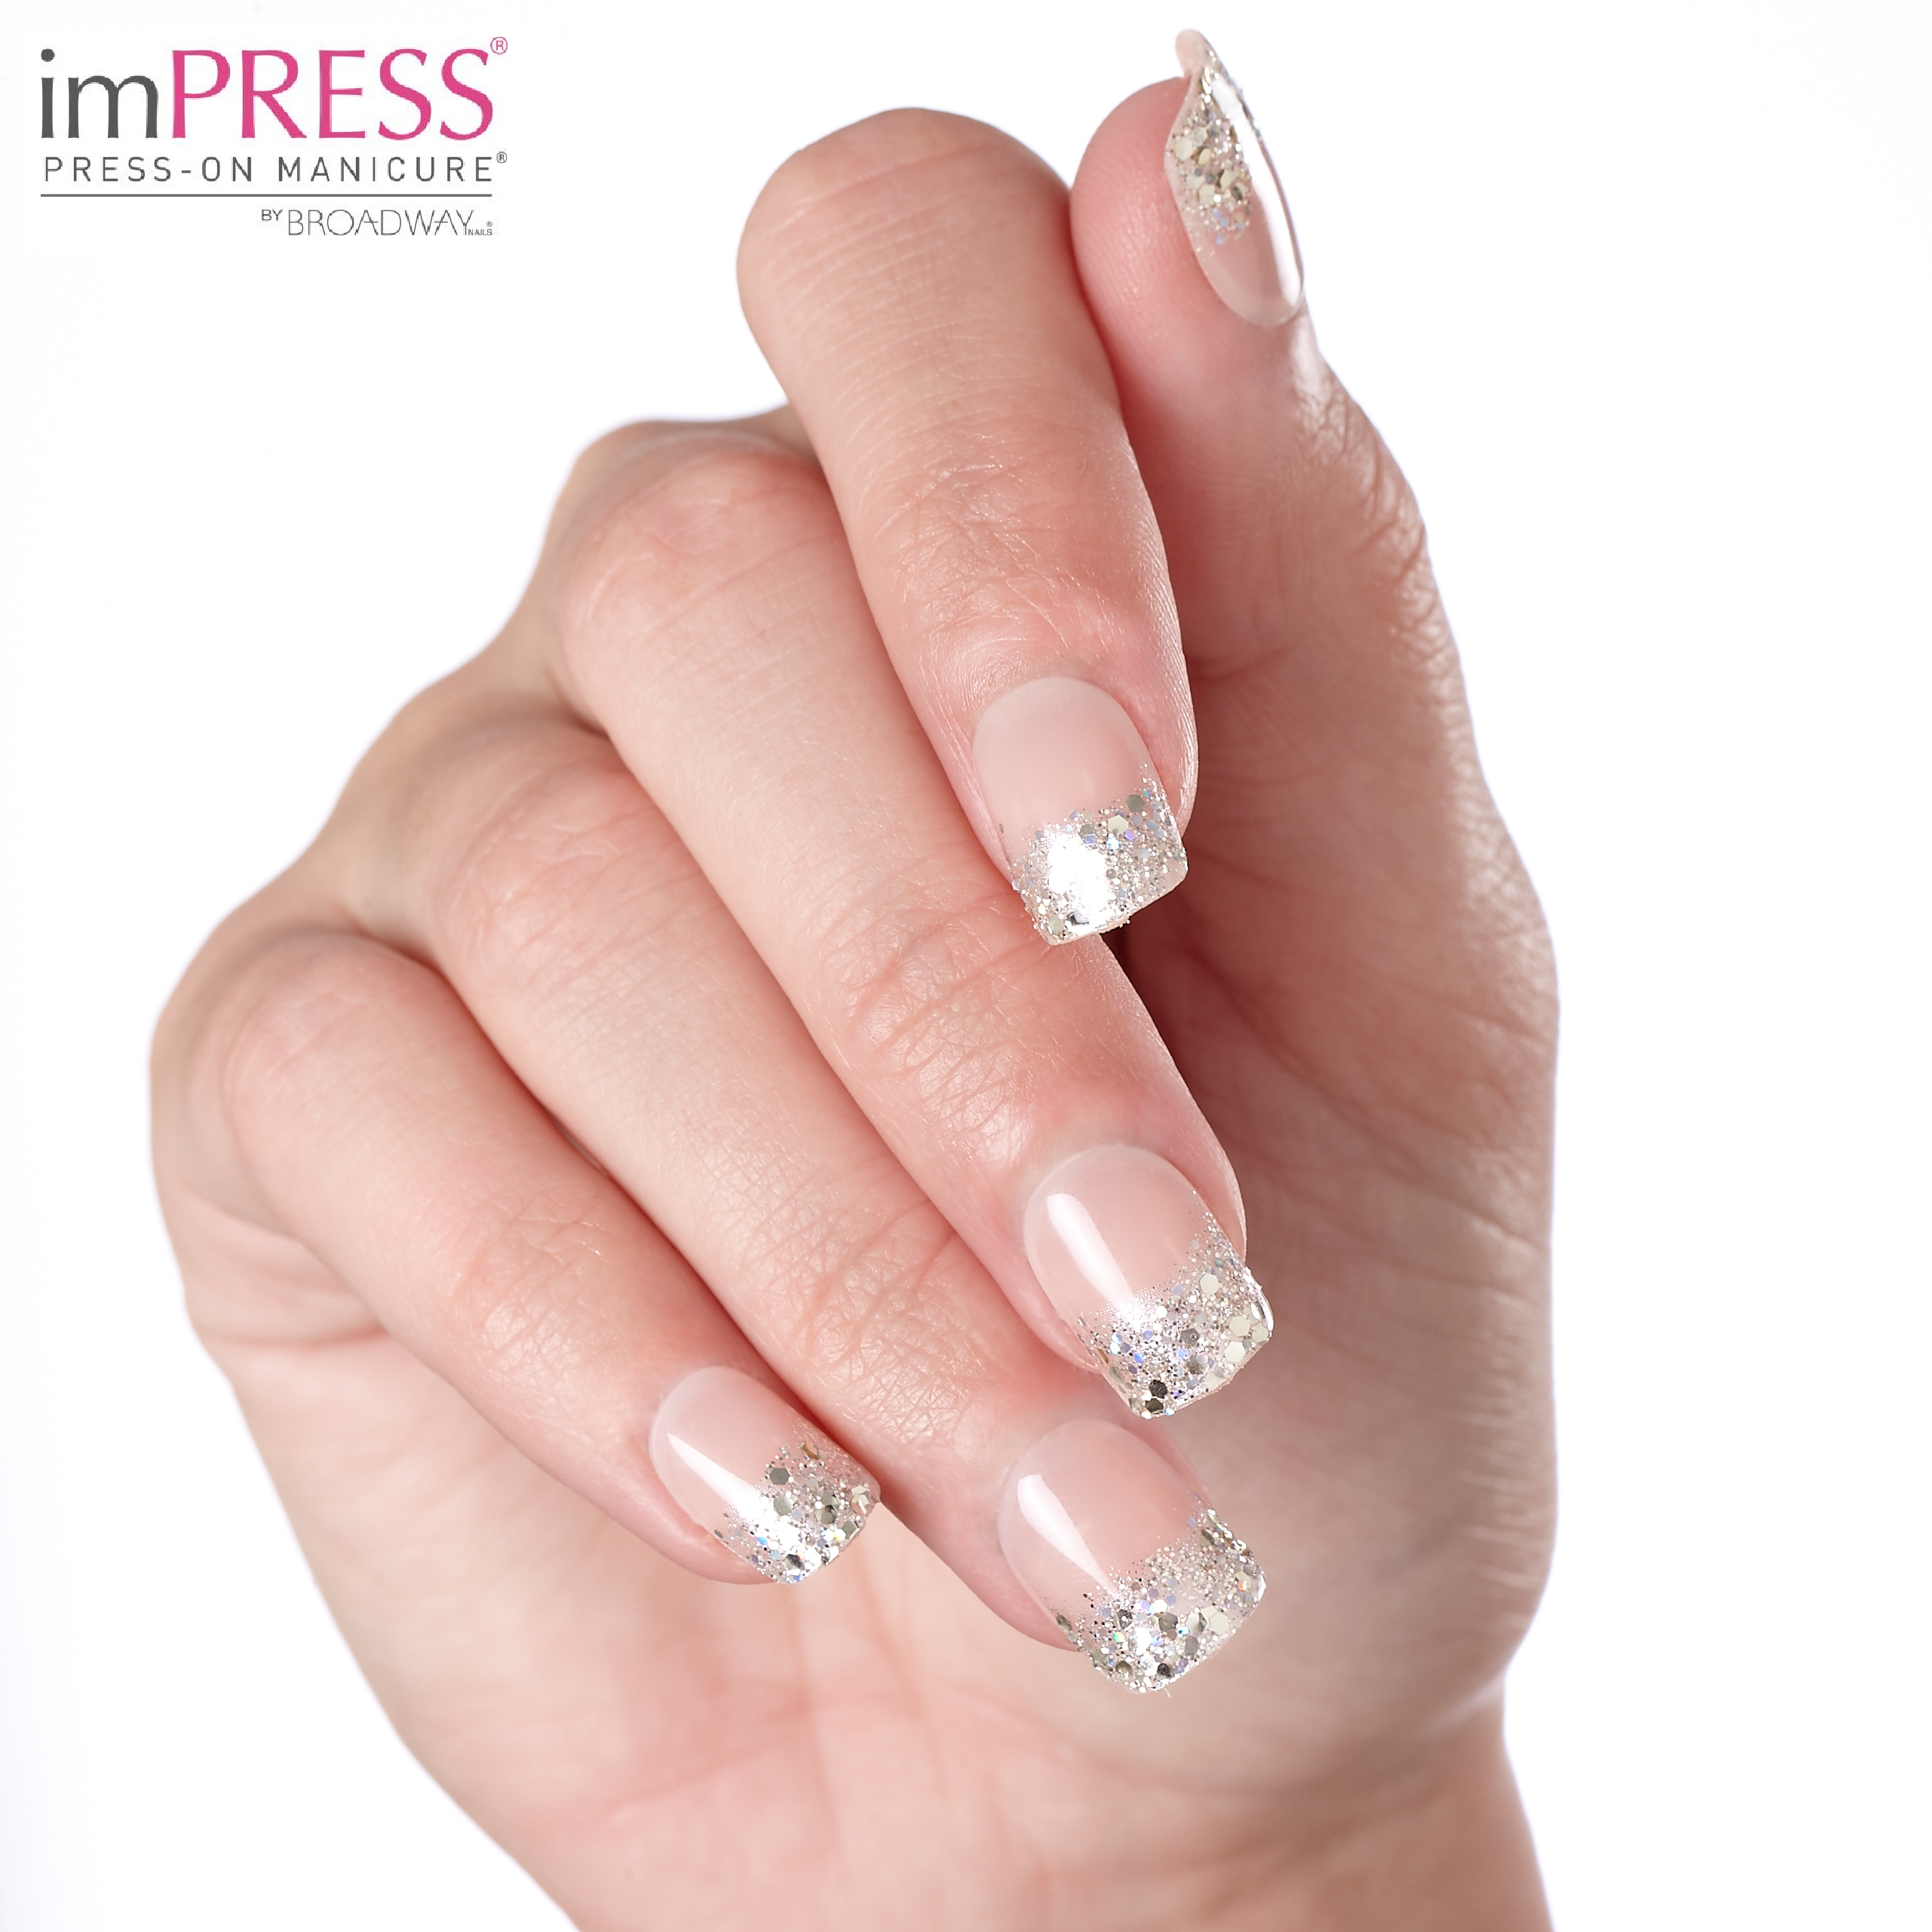 Impress press on manicure nails my style pinterest - Shine Bright Today With Impress Manicure In One Shine Day